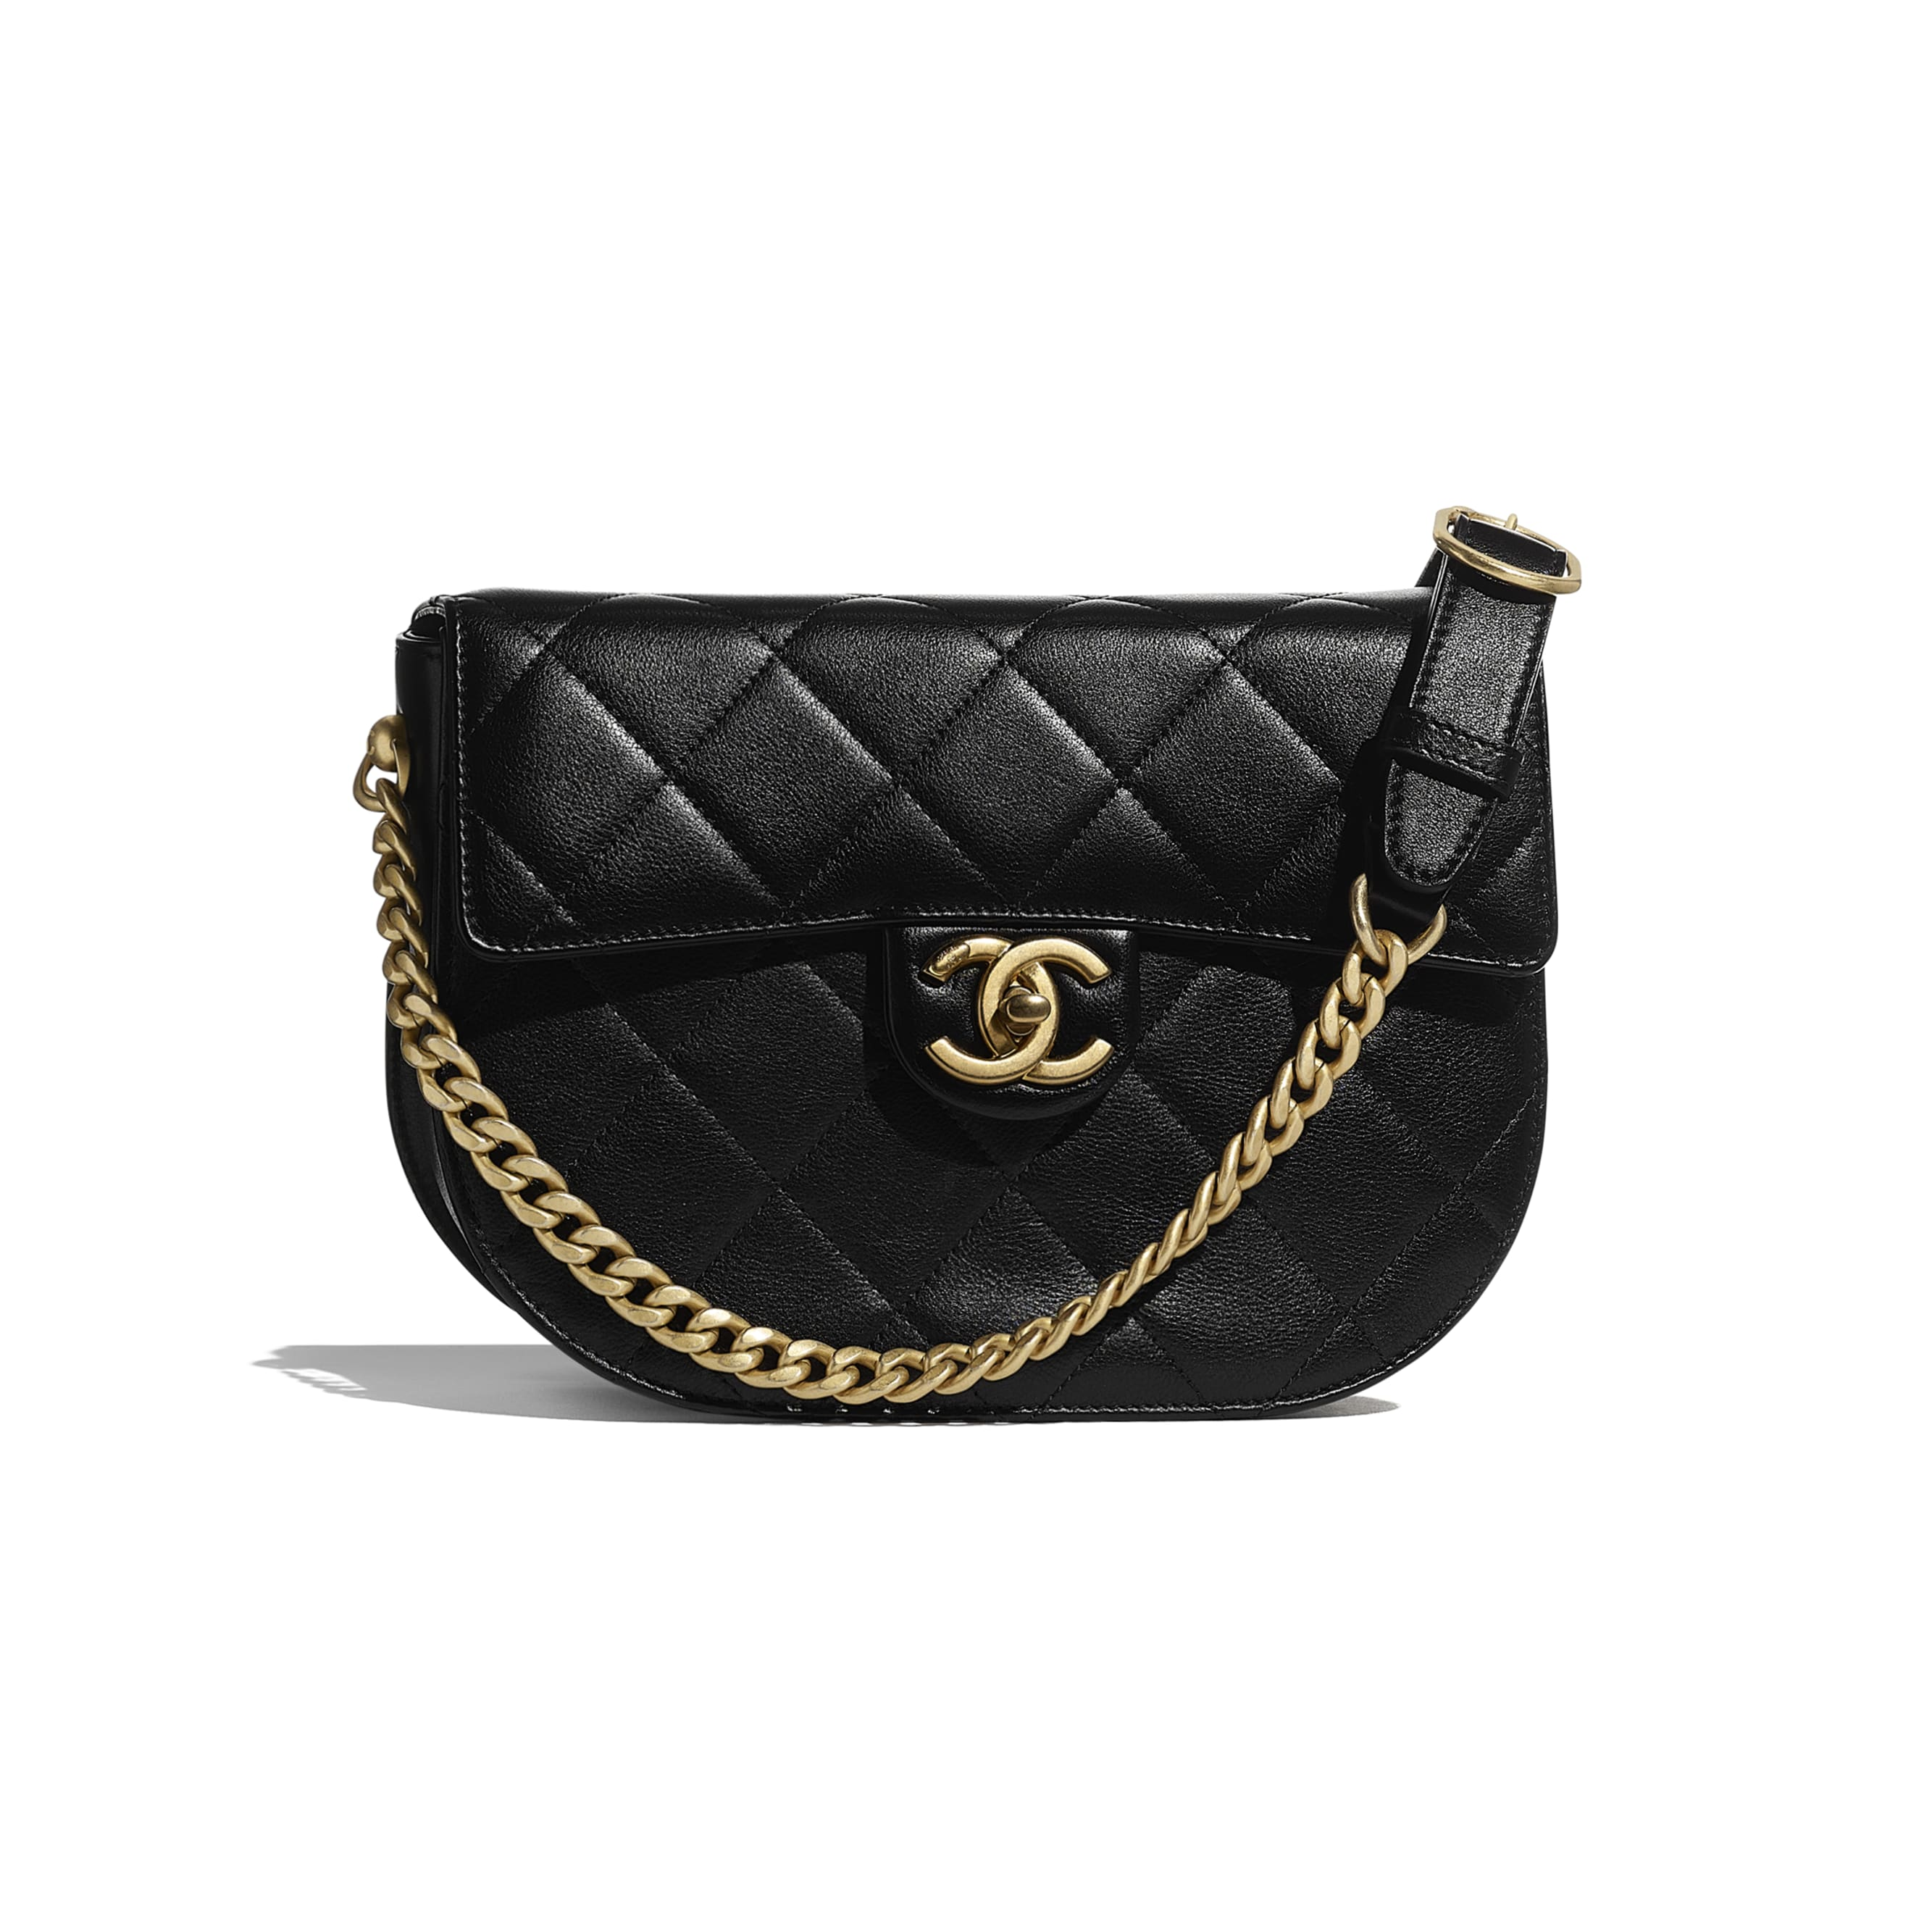 Small Messenger Bag - Black - Calfskin & Gold-Tone Metal - CHANEL - Default view - see standard sized version